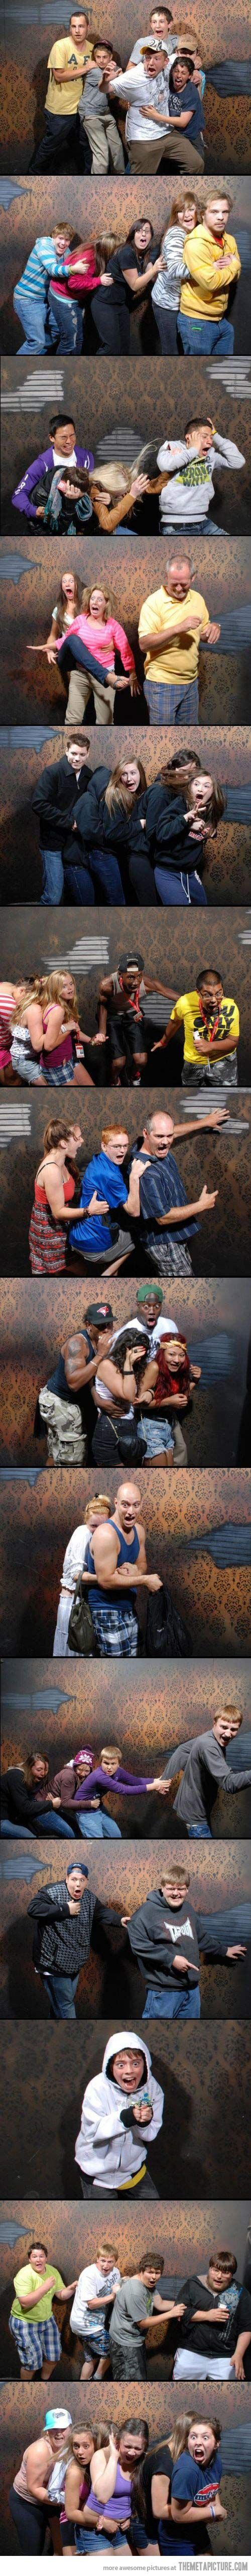 Meanwhile, inside the haunted house…--HAHAHAHAHAHHAA FOURTH ONE DOWN IS THE BEST.